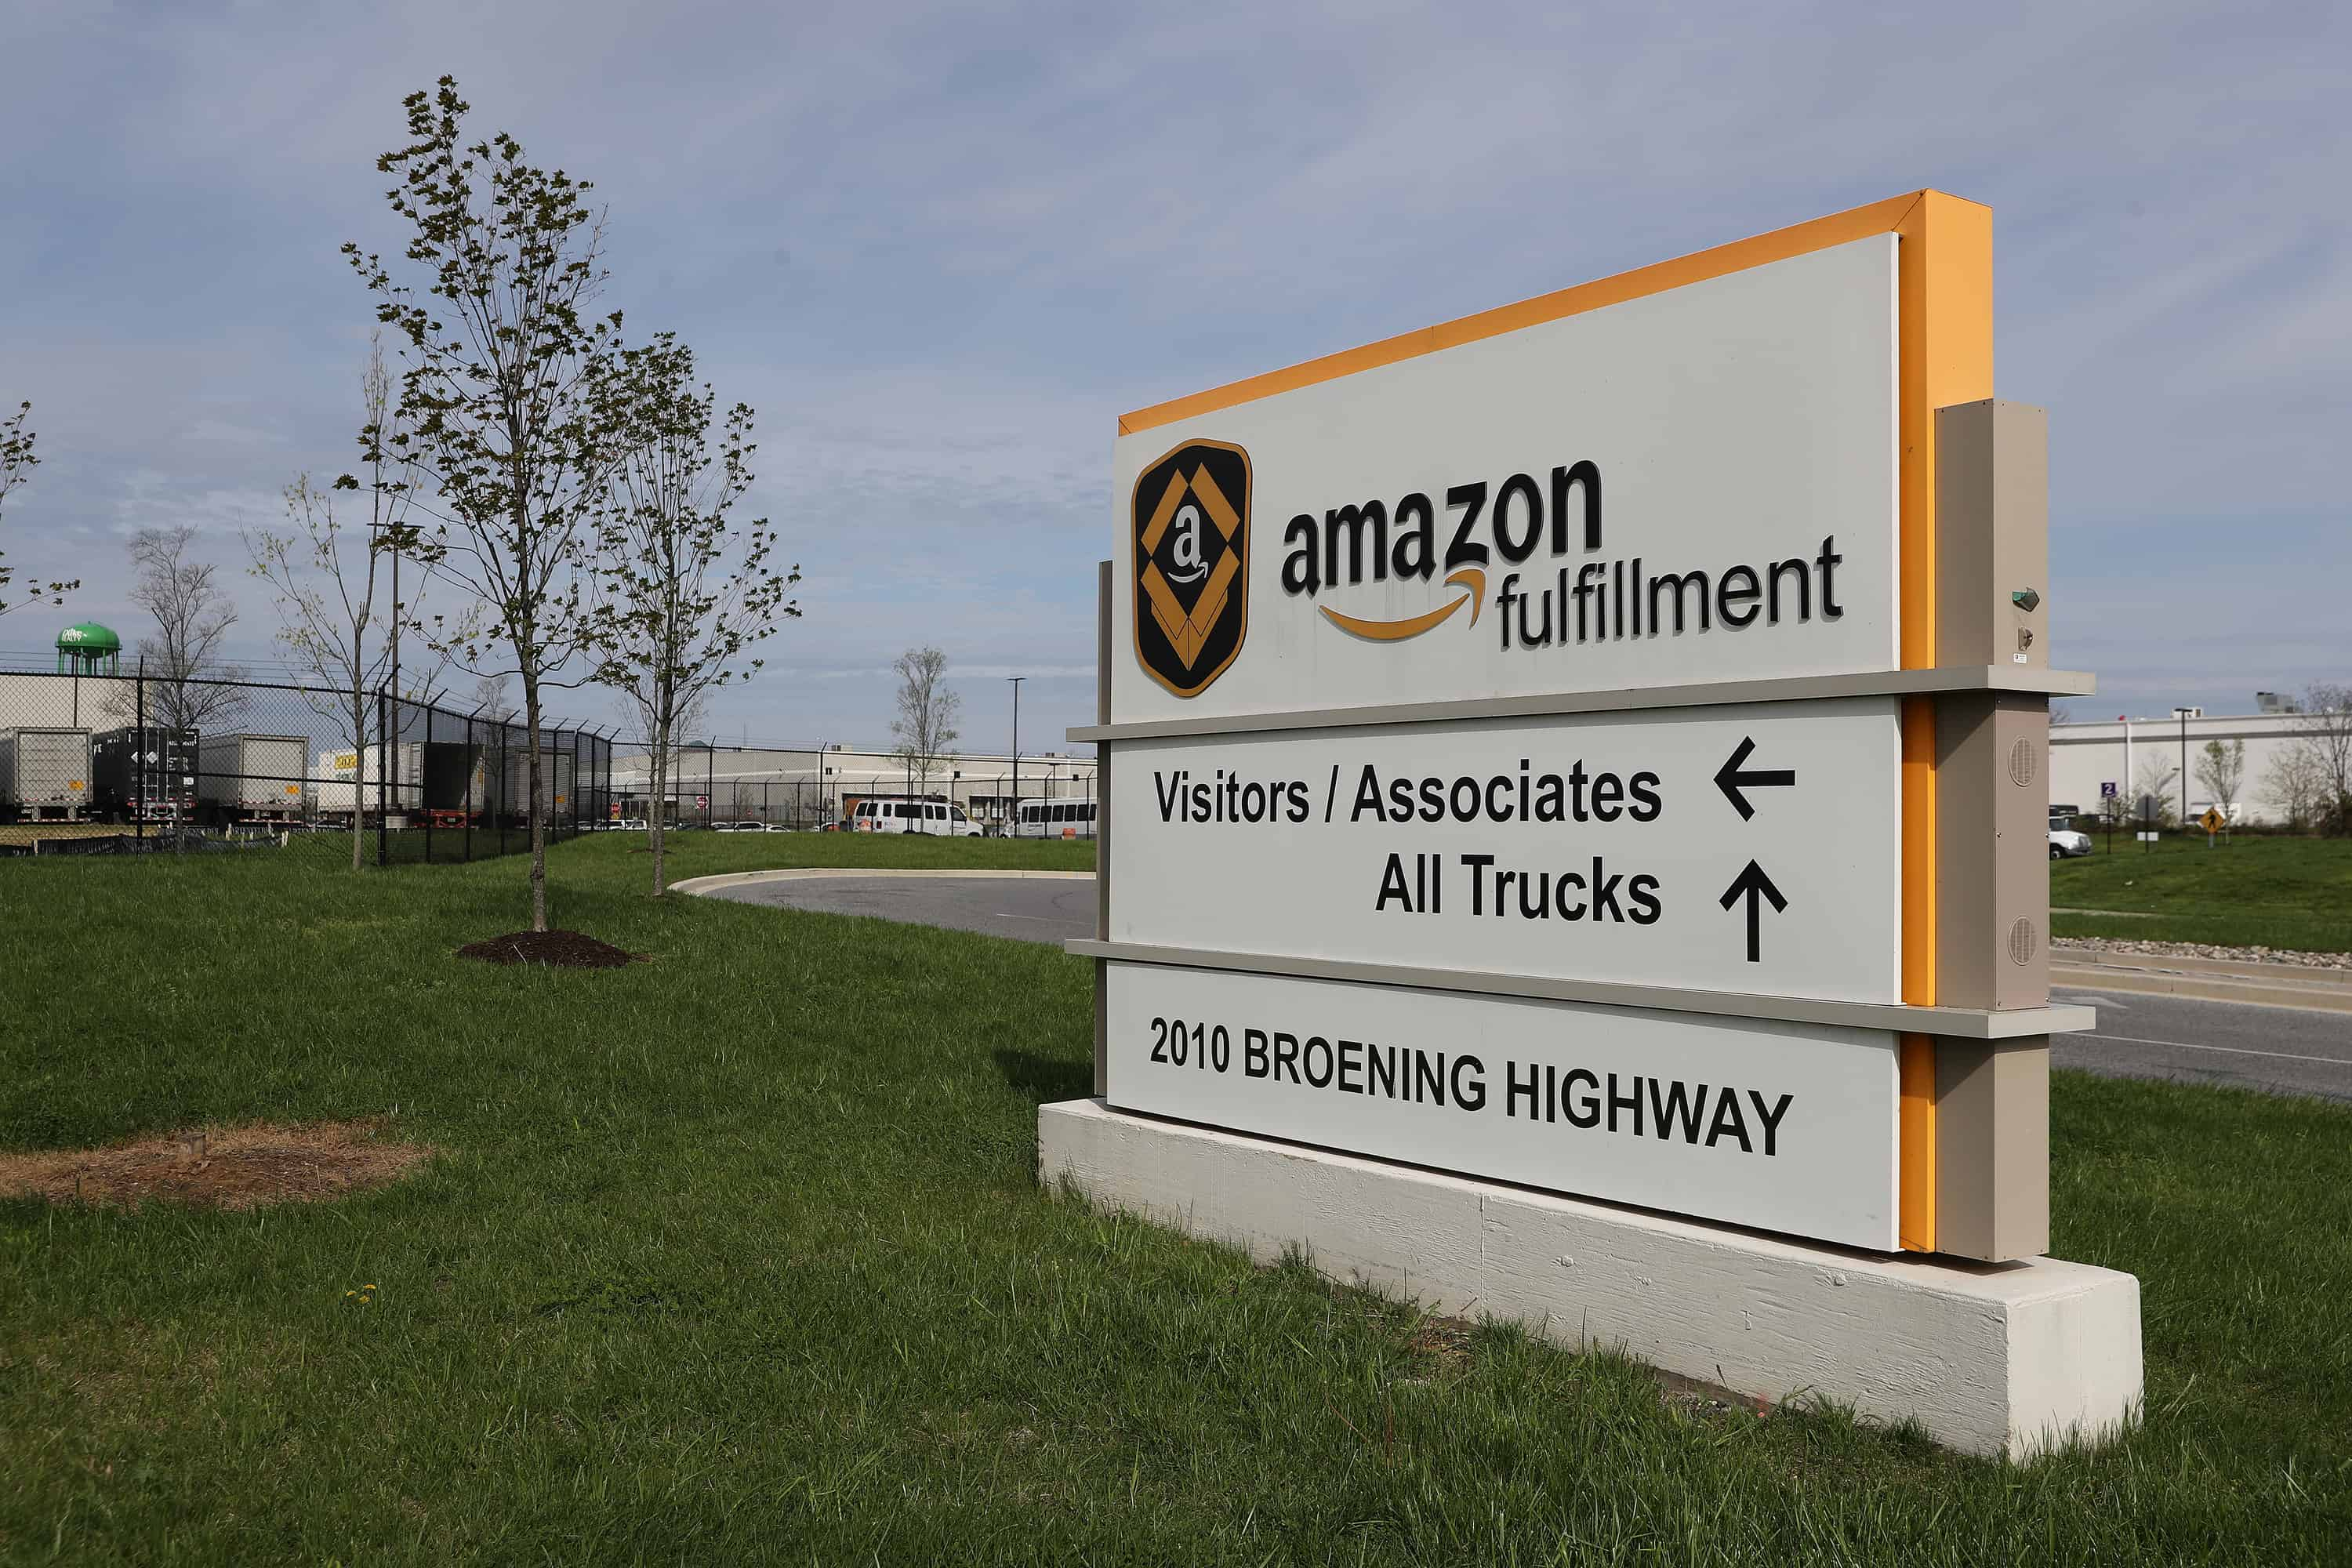 Over 300 Amazon Warehouse Workers Plan Nationwide Protest To